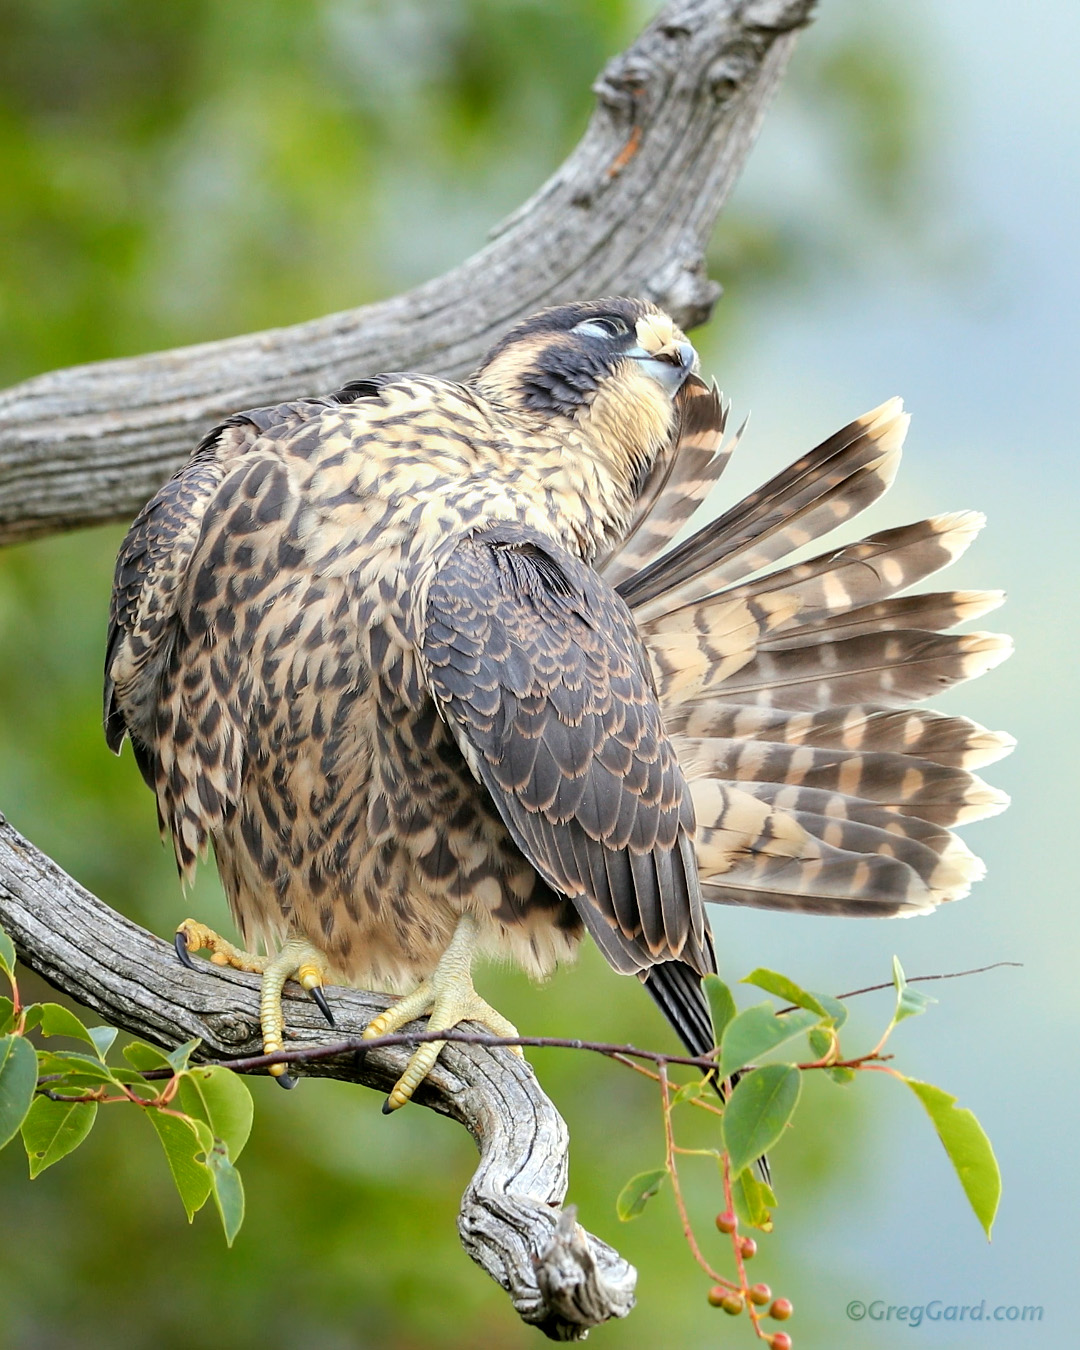 Close-up look on the young Peregrine Falcon caring for its feathers - New Jersey